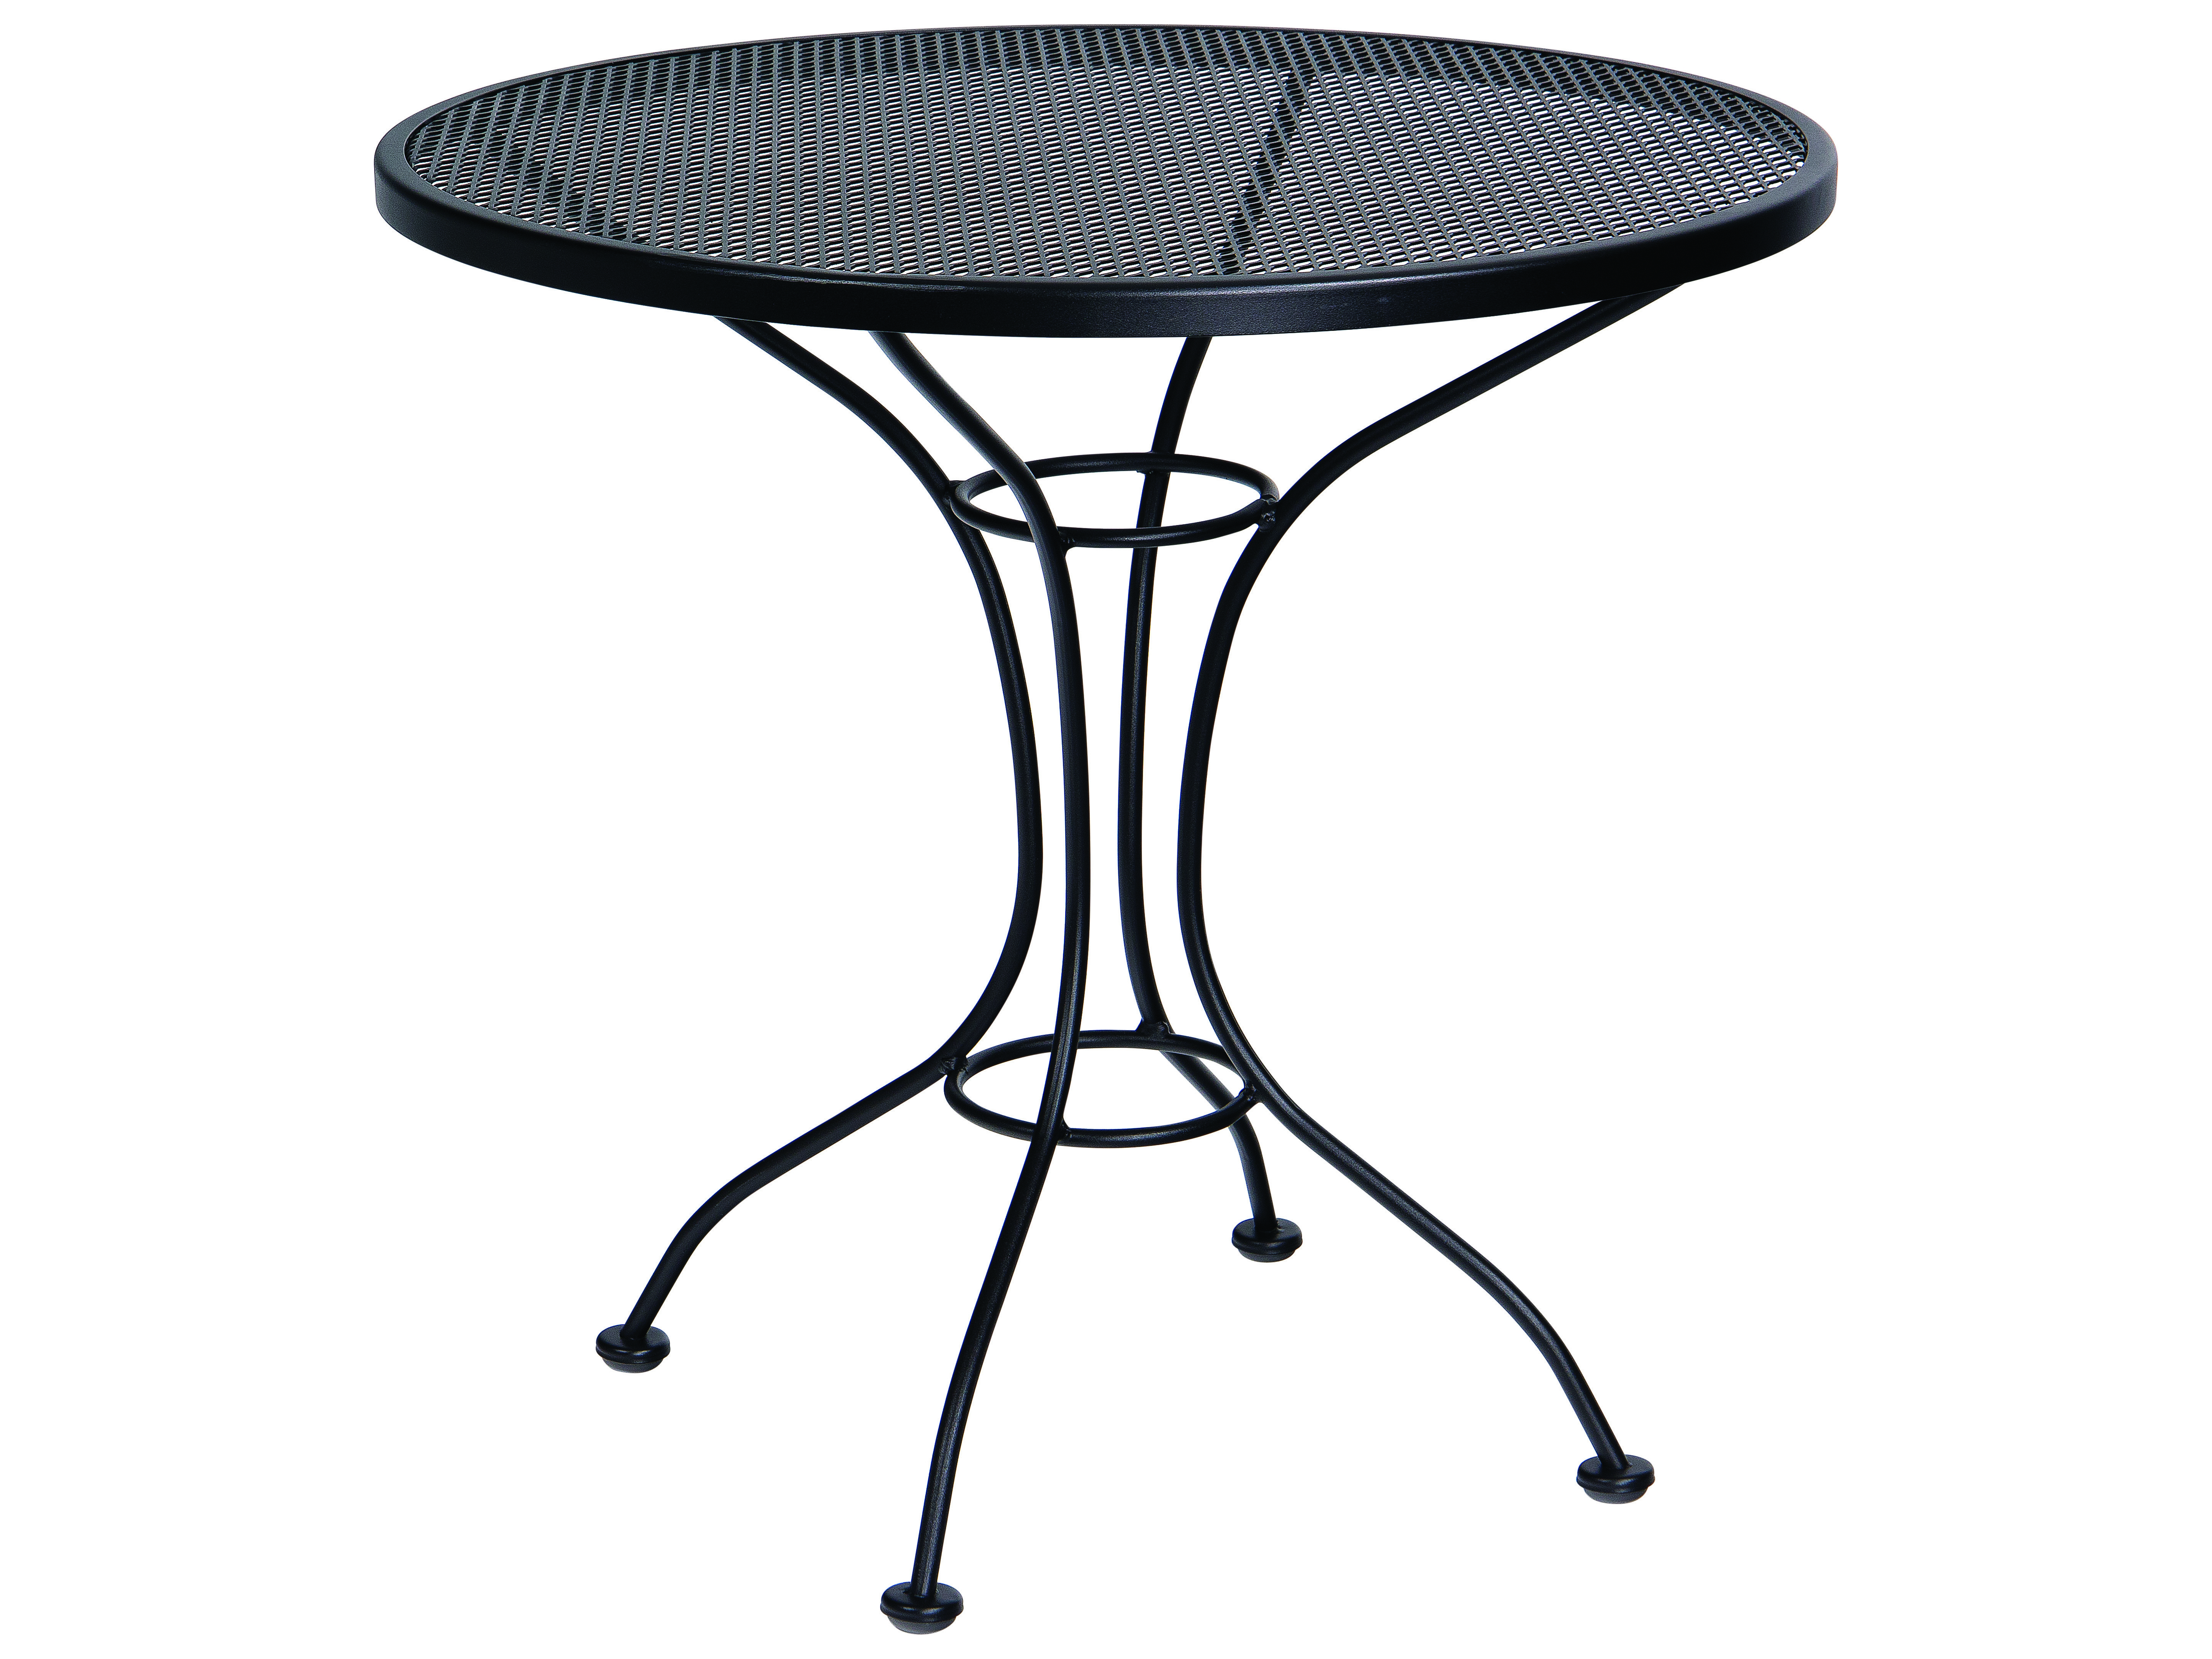 Woodard Parisienne Wrought Iron 30 Round Mesh Top Bistro